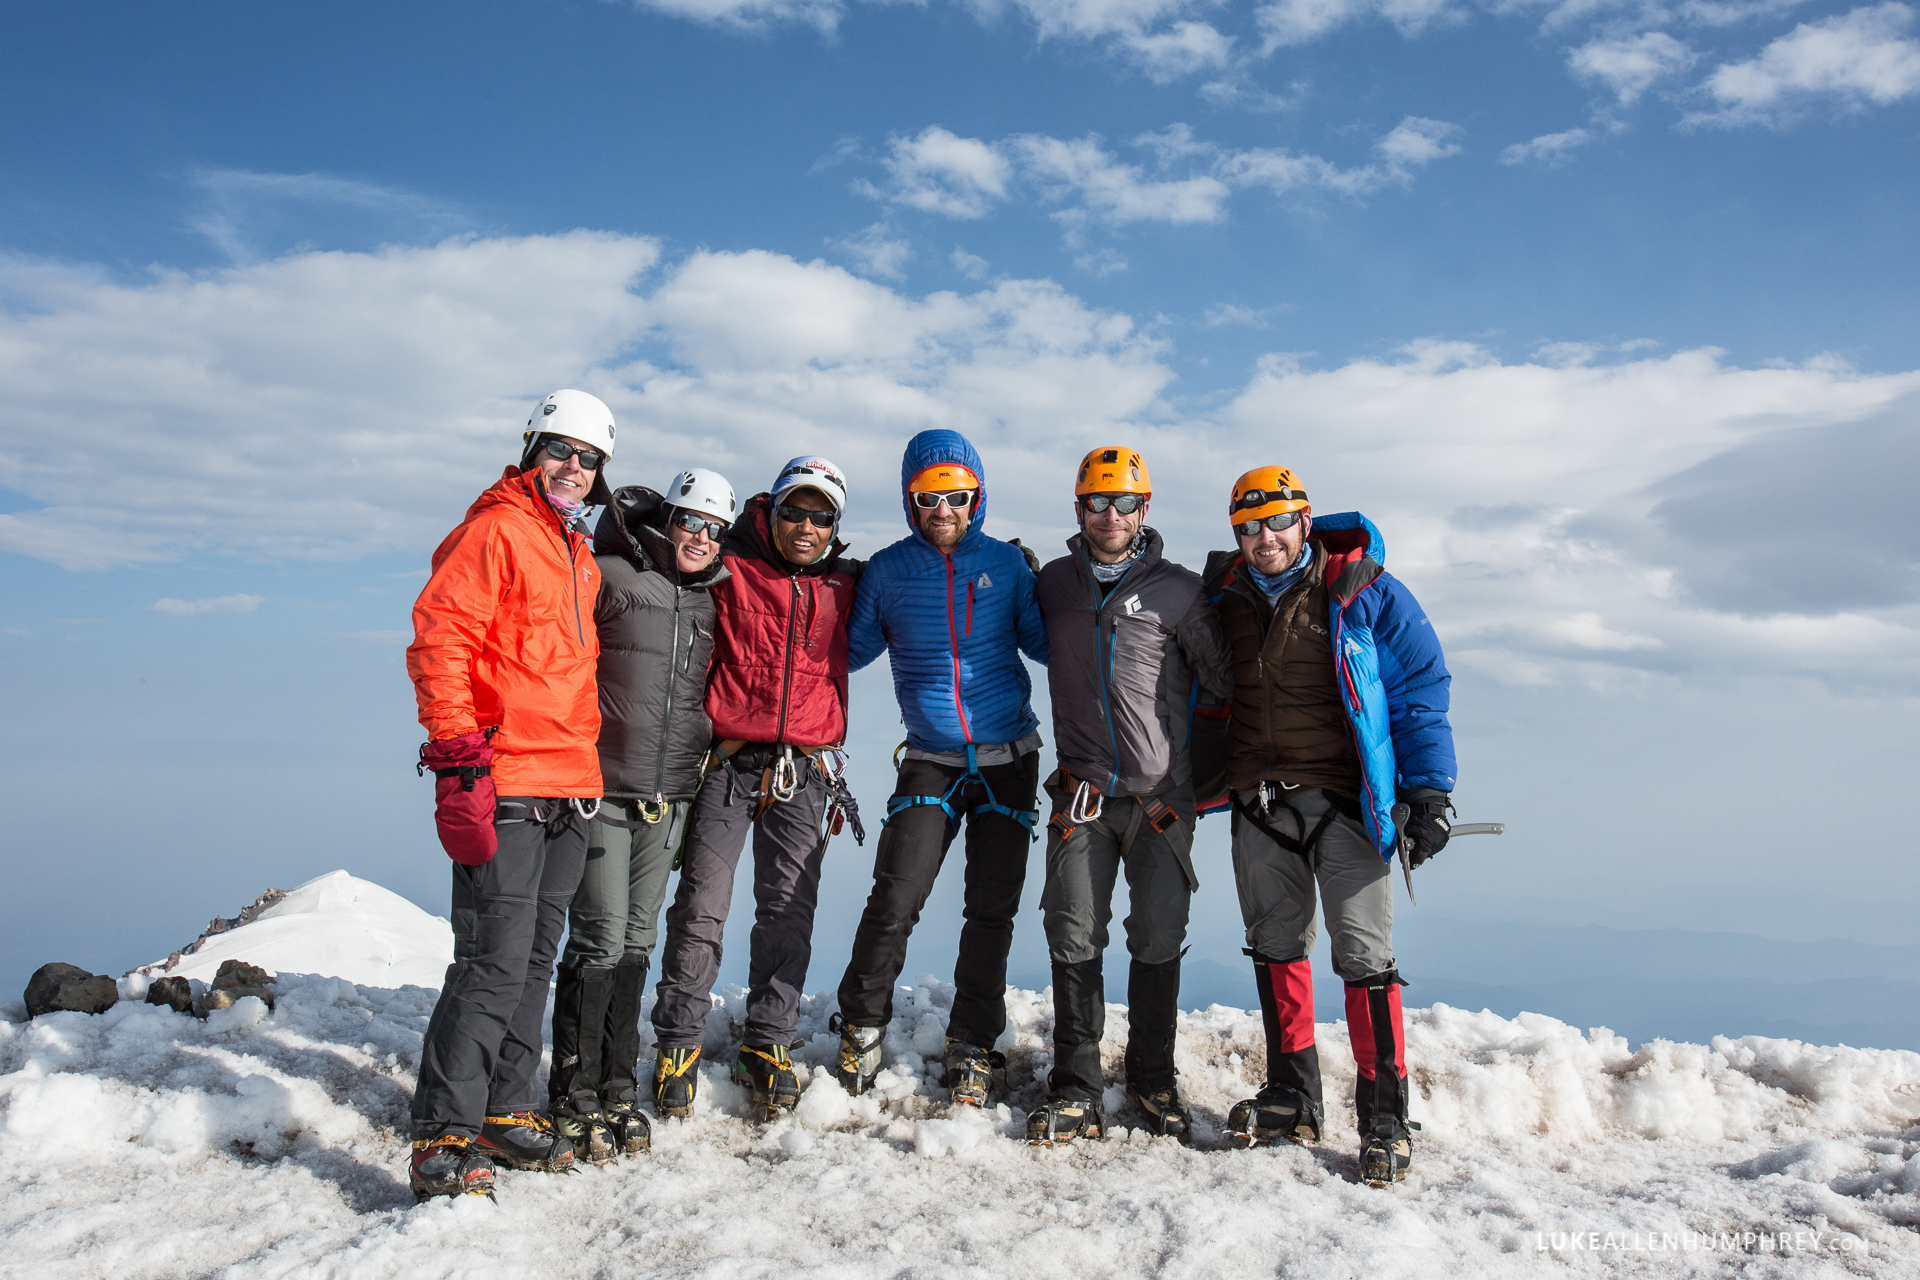 David Morton & Lakpa Rita at the summit with some of the climbers in 2014.    Photo by: Luke Humphrey